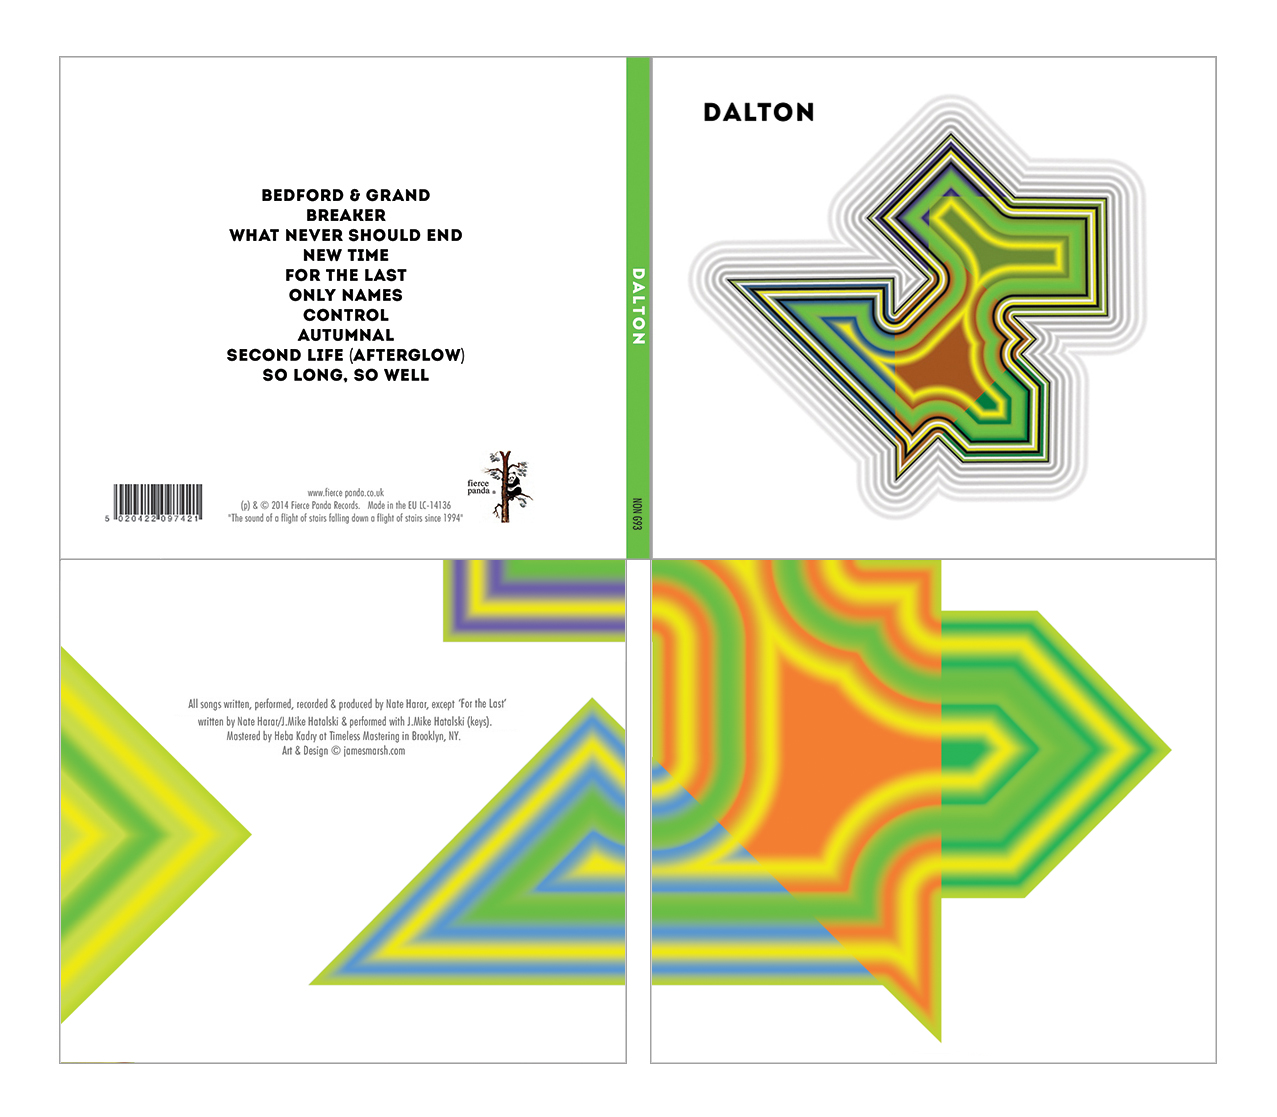 Dalton 4 panel digipack layout revised